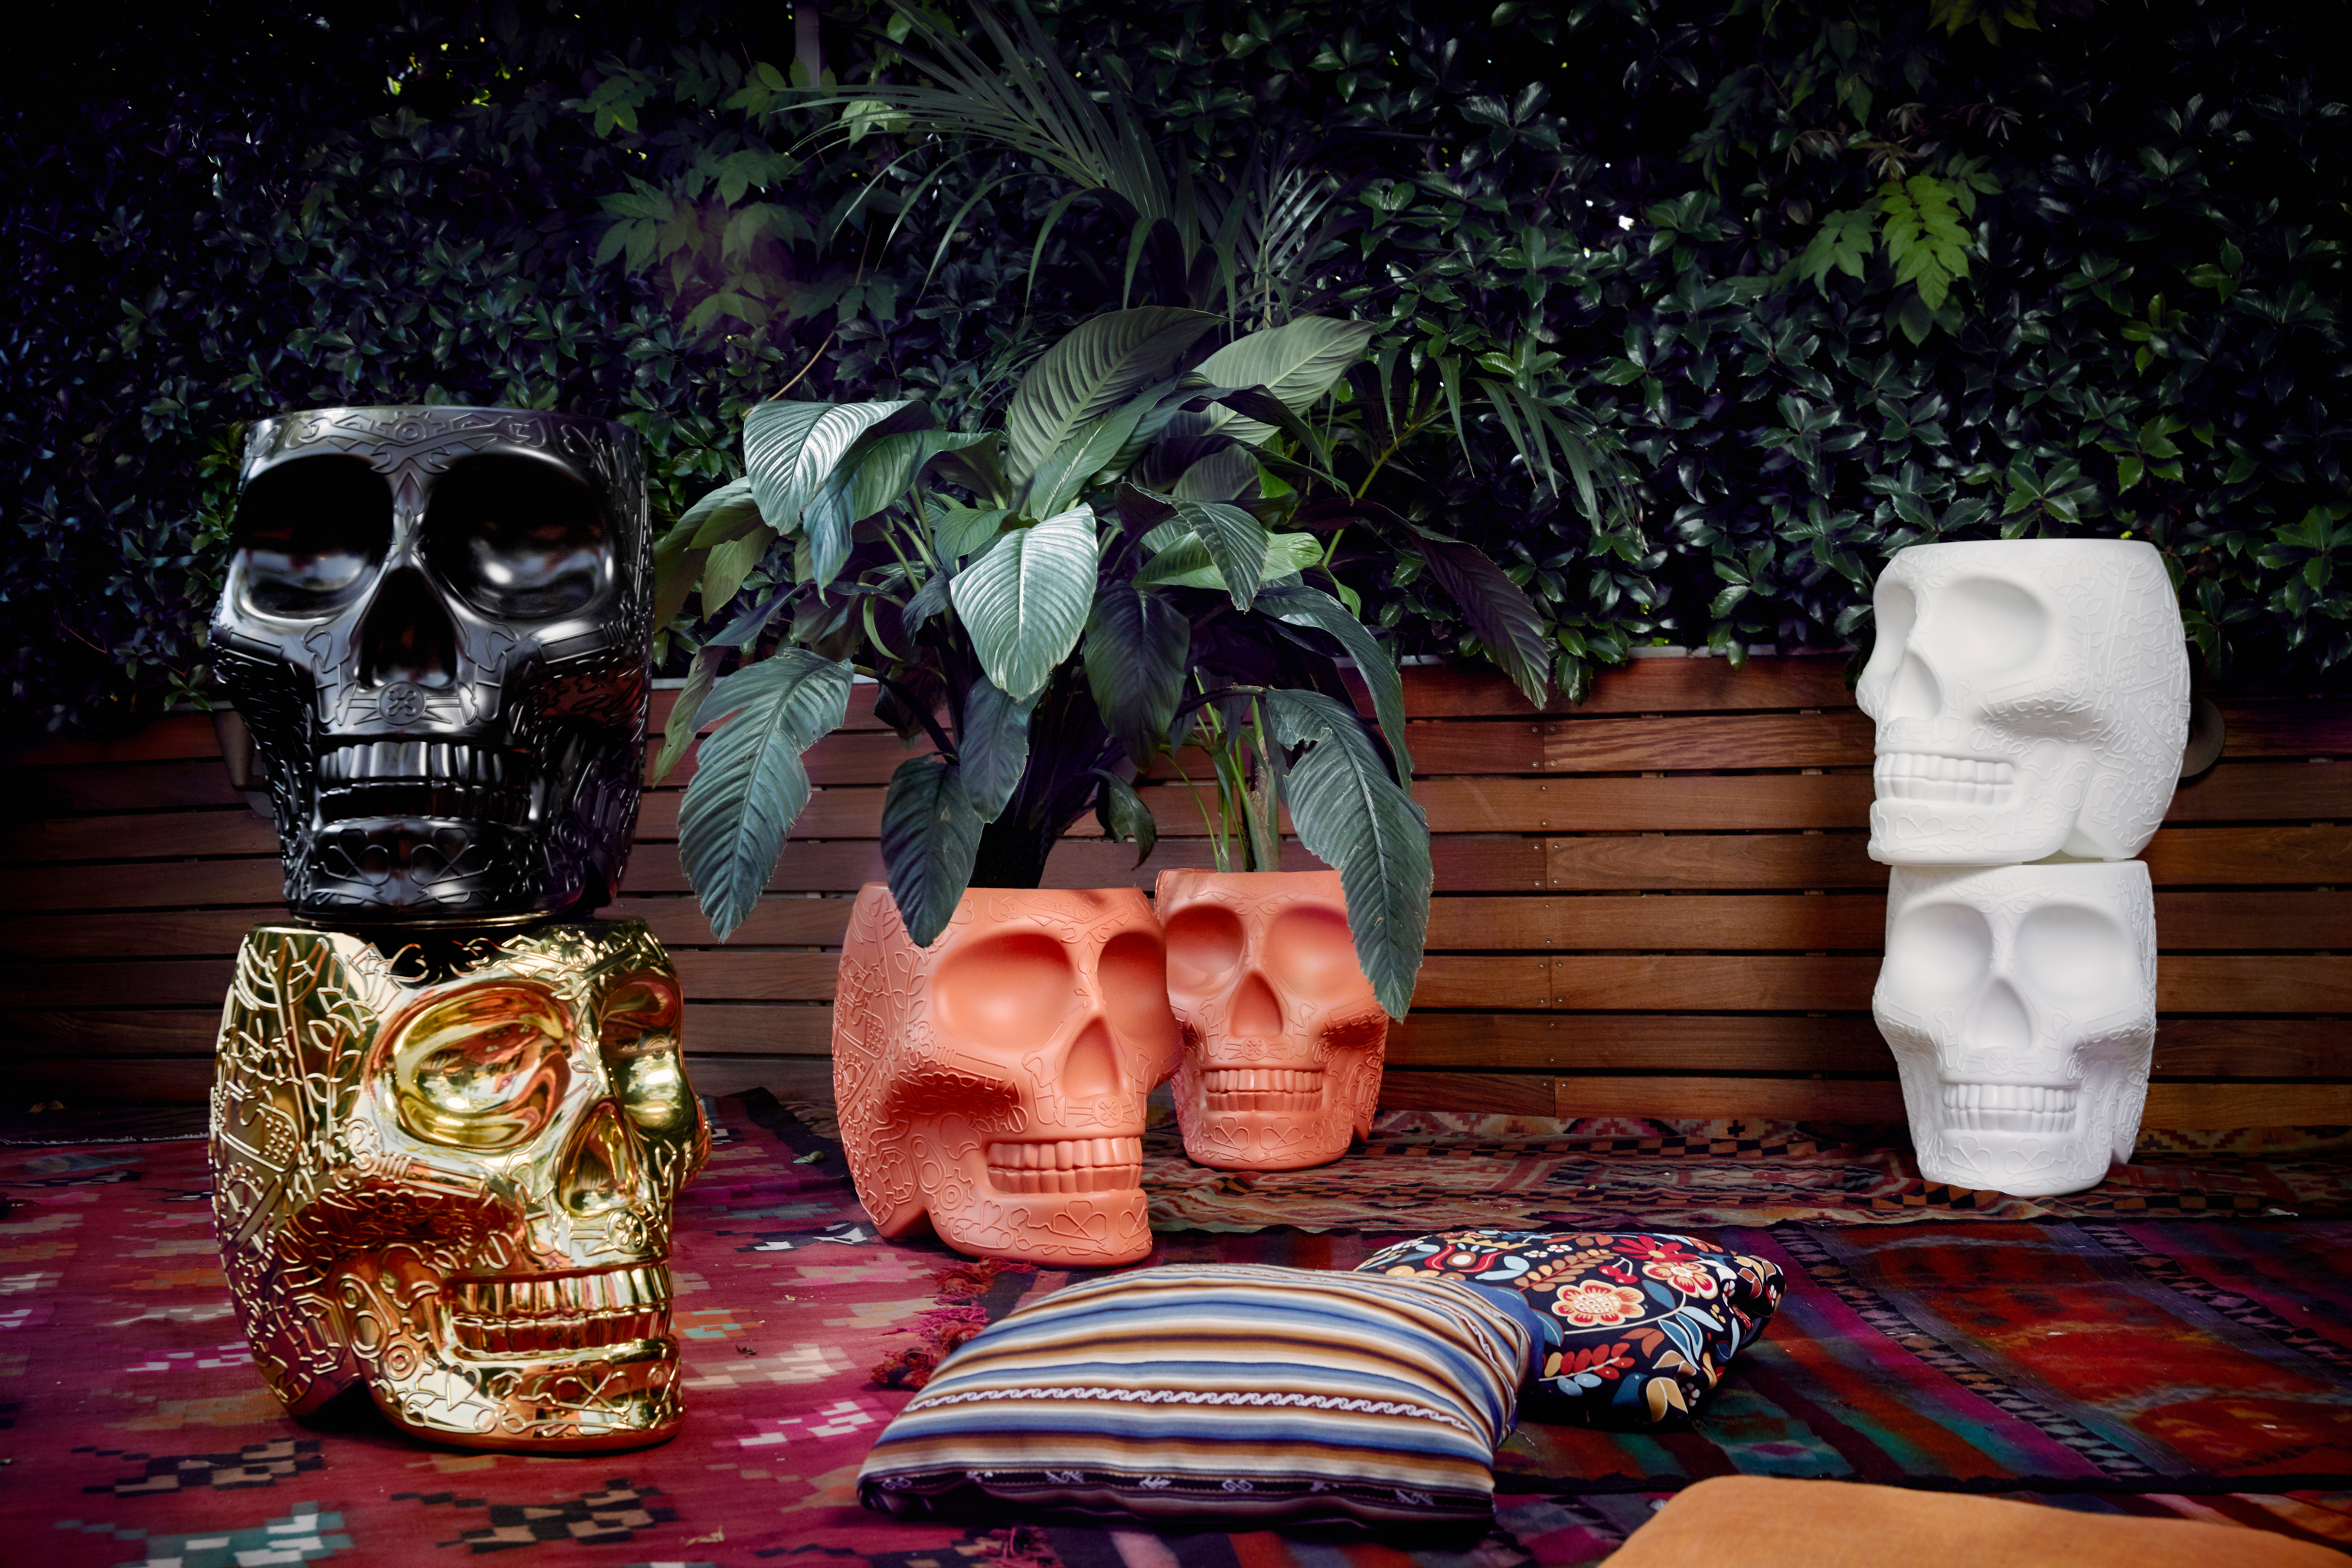 13-qeeboo-mexico-stool-and-sidetable-by-studio-job-terracotta